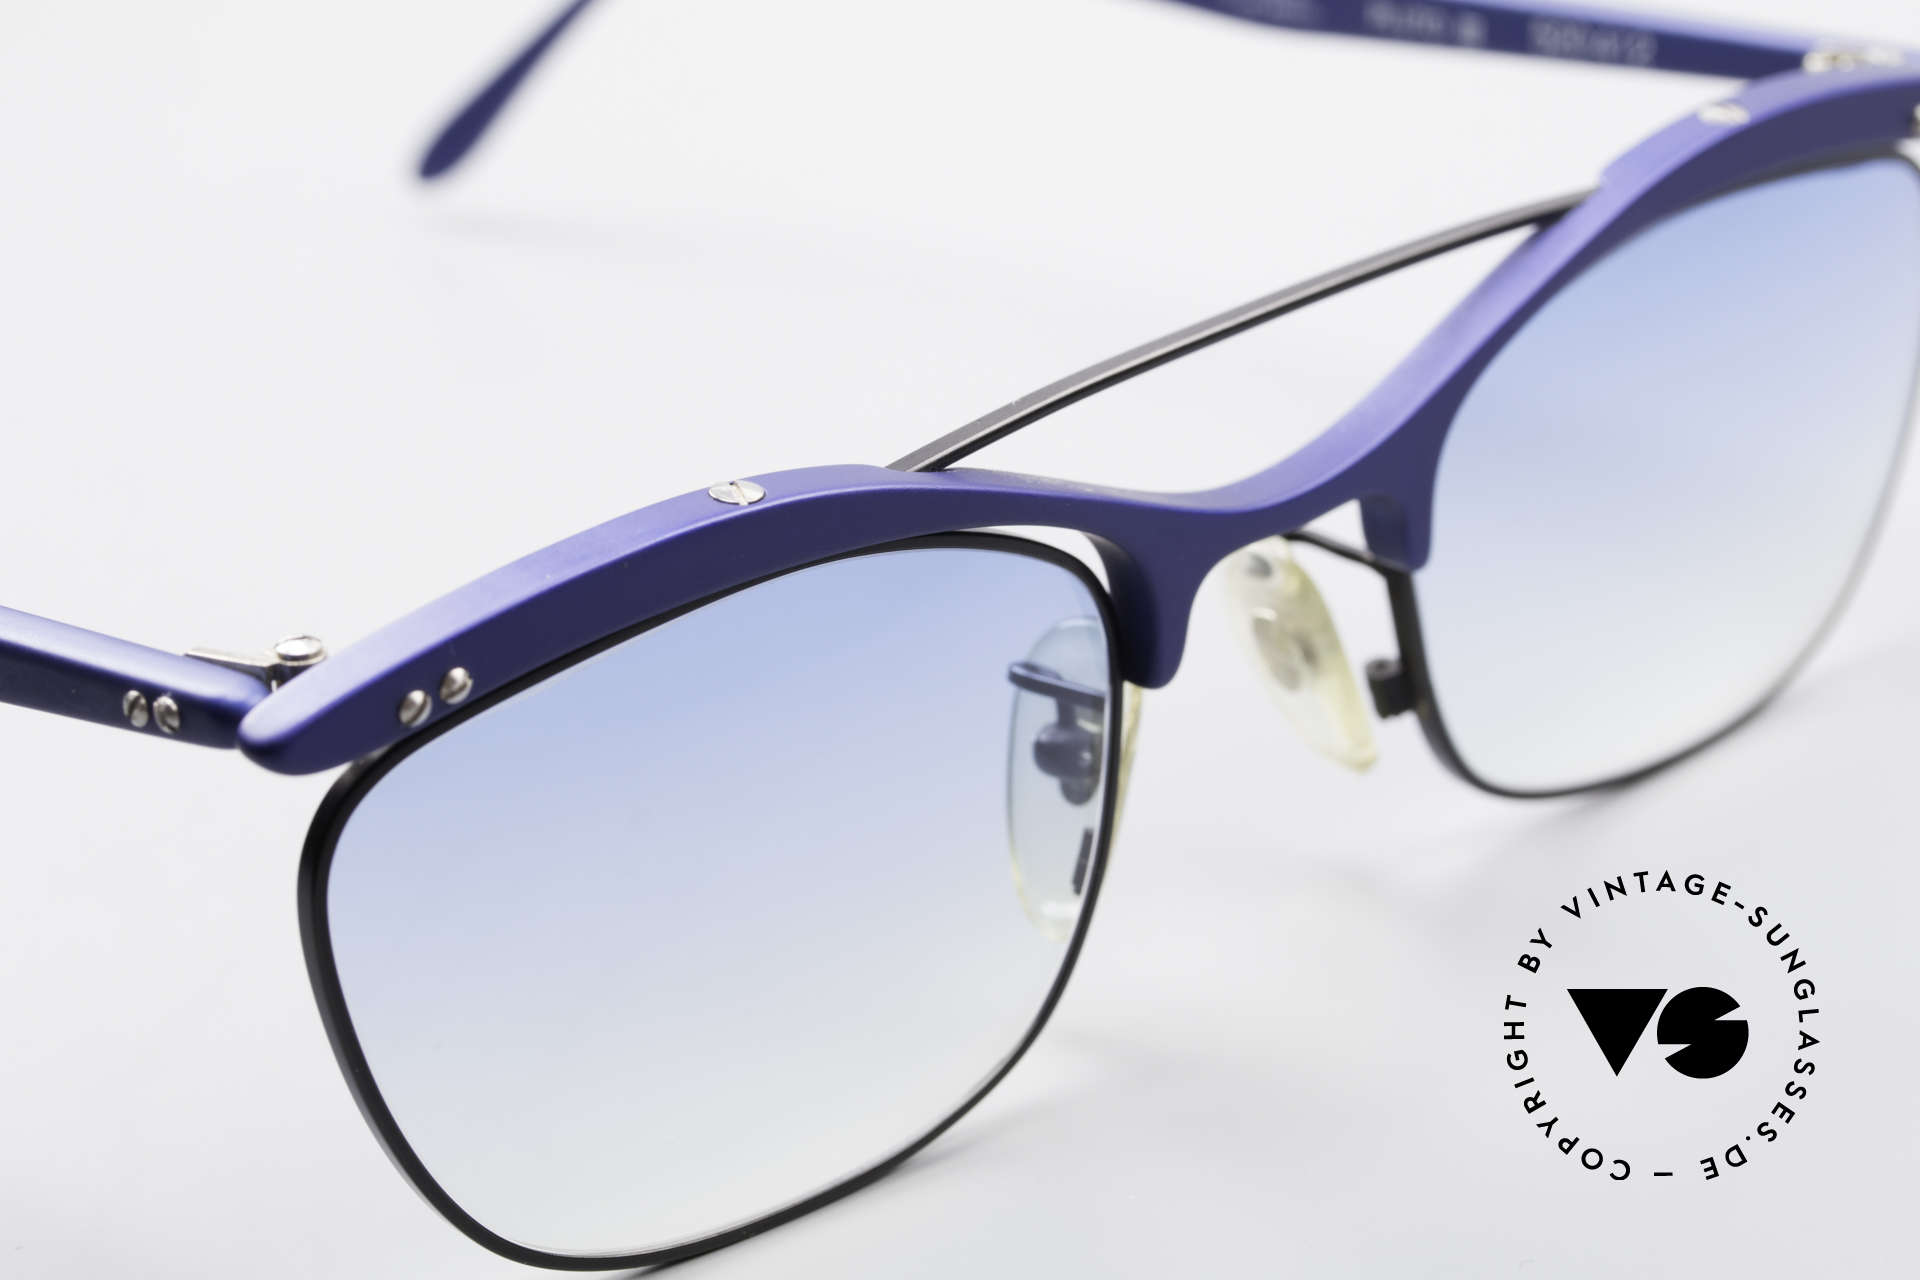 L.A. Eyeworks PLUTO III Vintage Frame No Retro Specs, NO RETRO shades, but an old original (Los Angeles, '81), Made for Men and Women